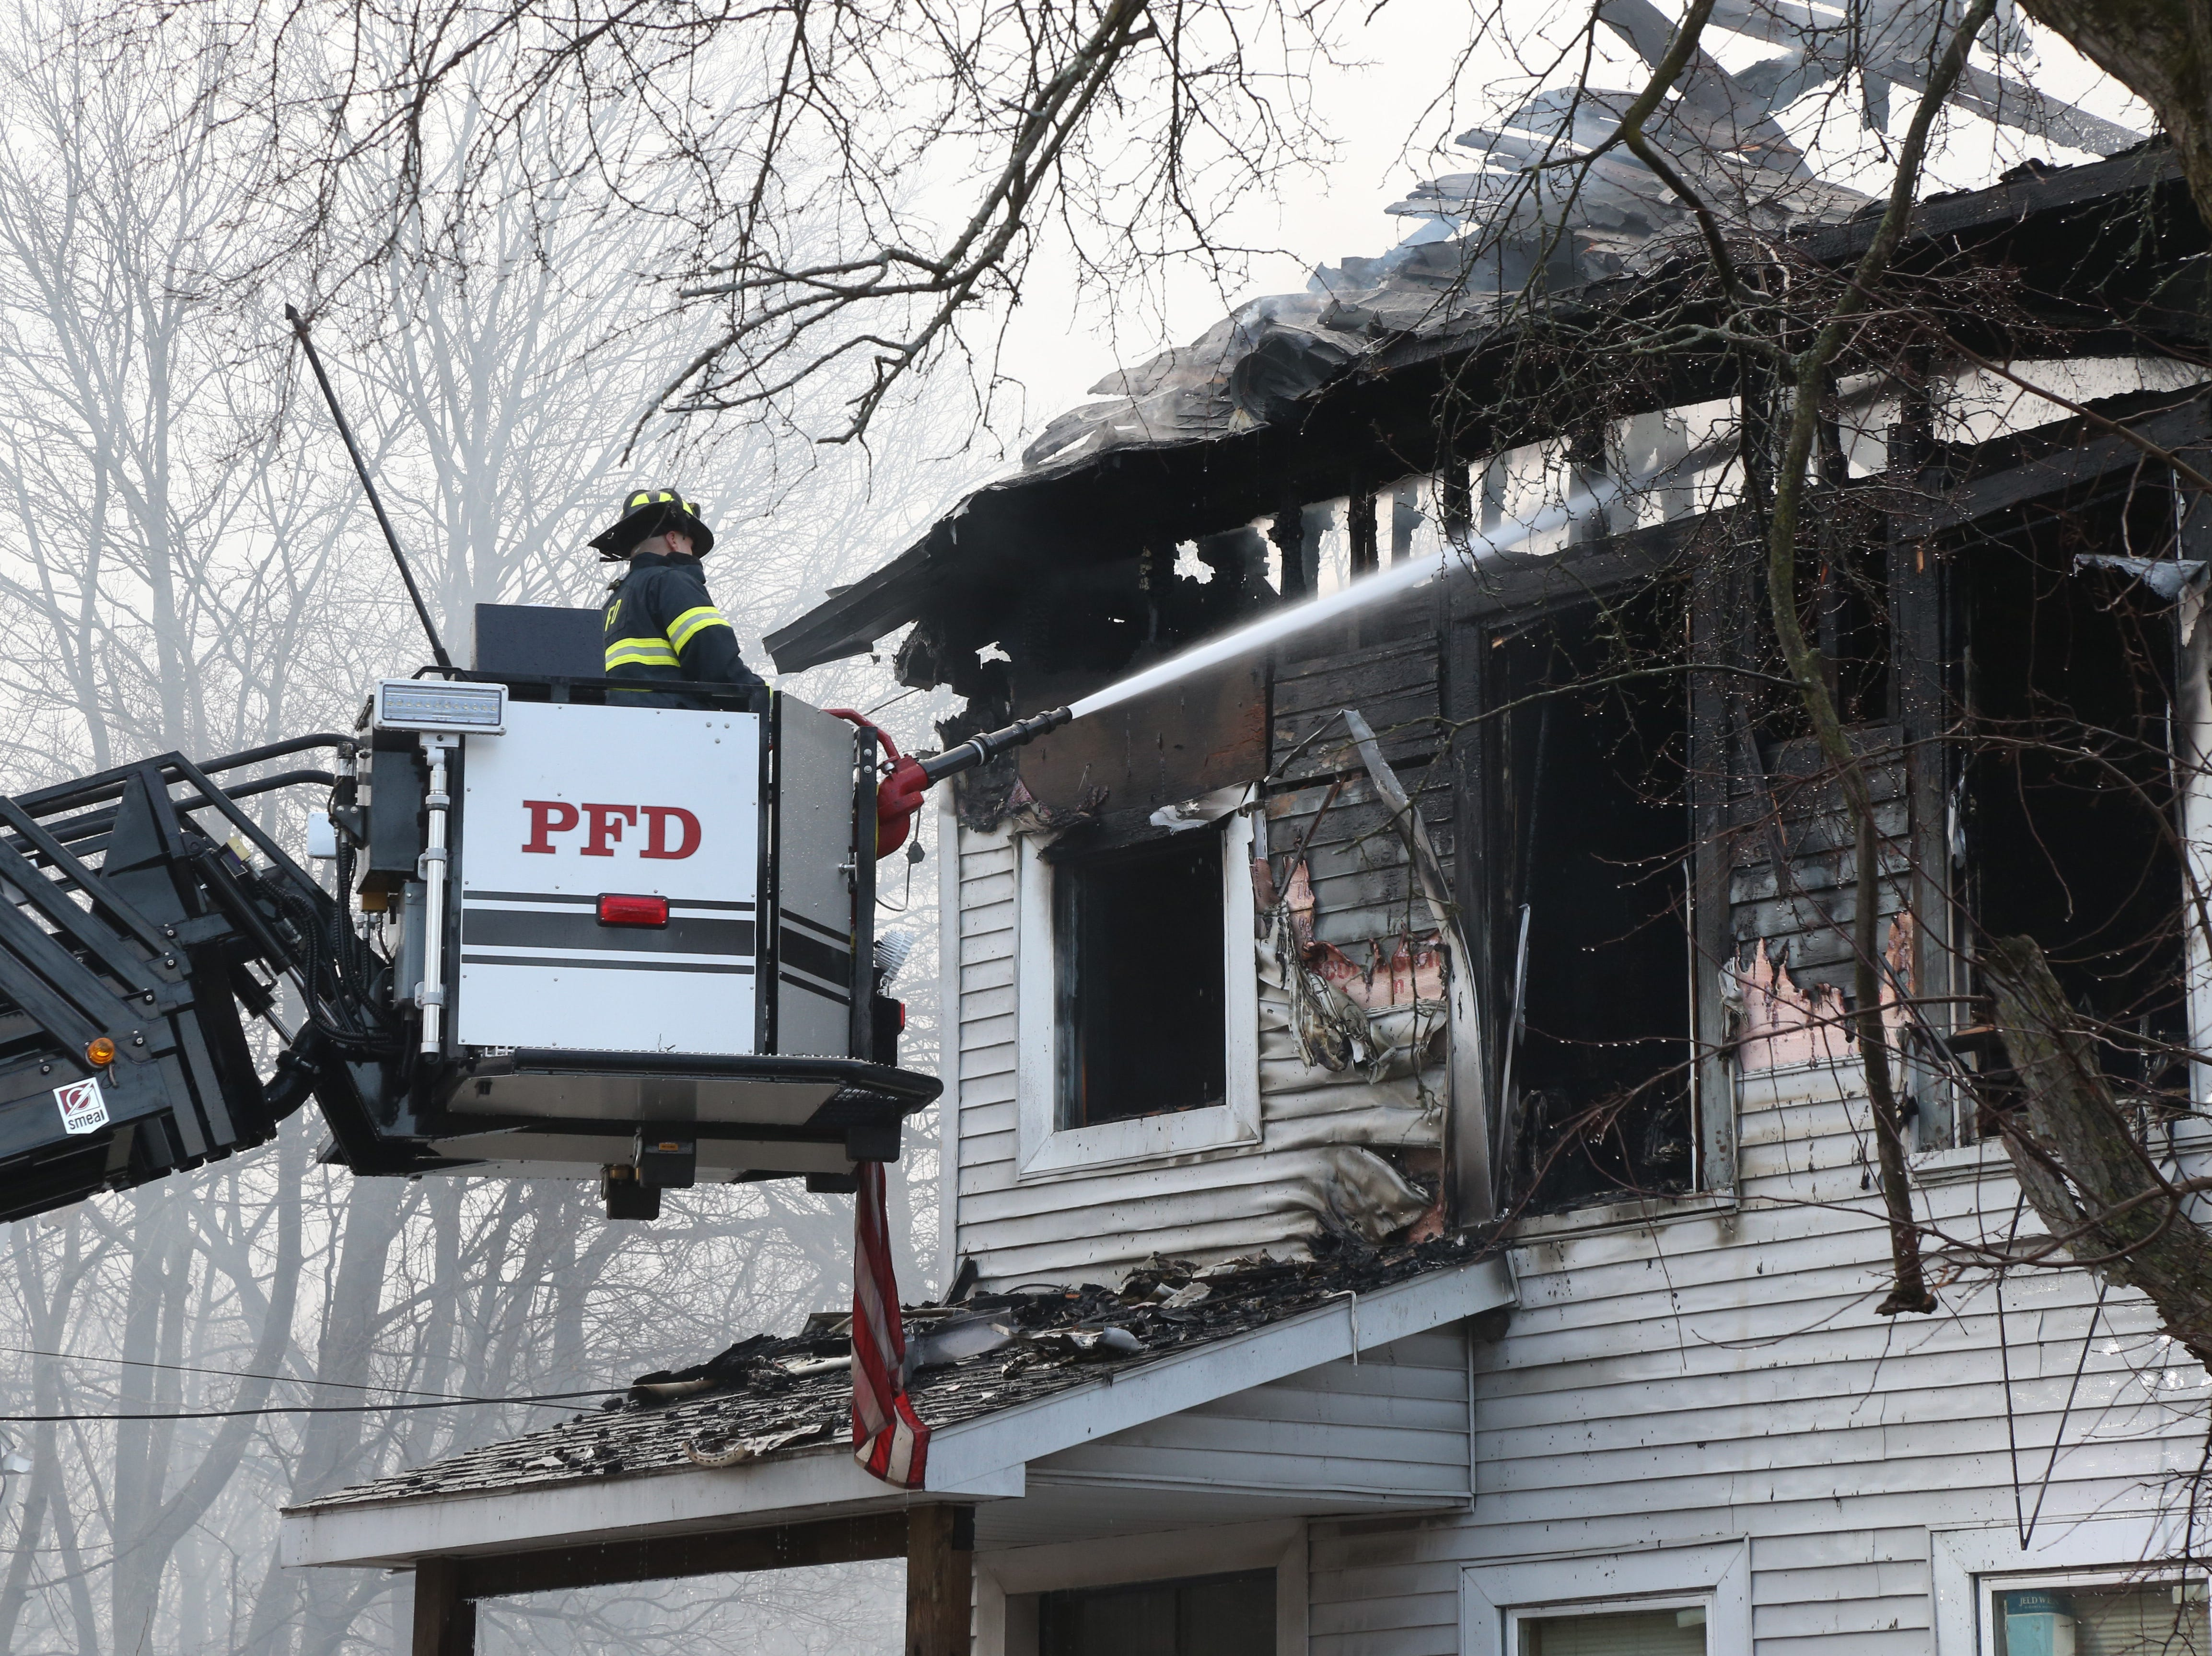 Poughkeepsie Fire Department Tower Ladder 2 dowses the 4 family building on Winnikee Avenue after battling back the fire in the City of Poughkeepsie on Feb. 5, 2019.